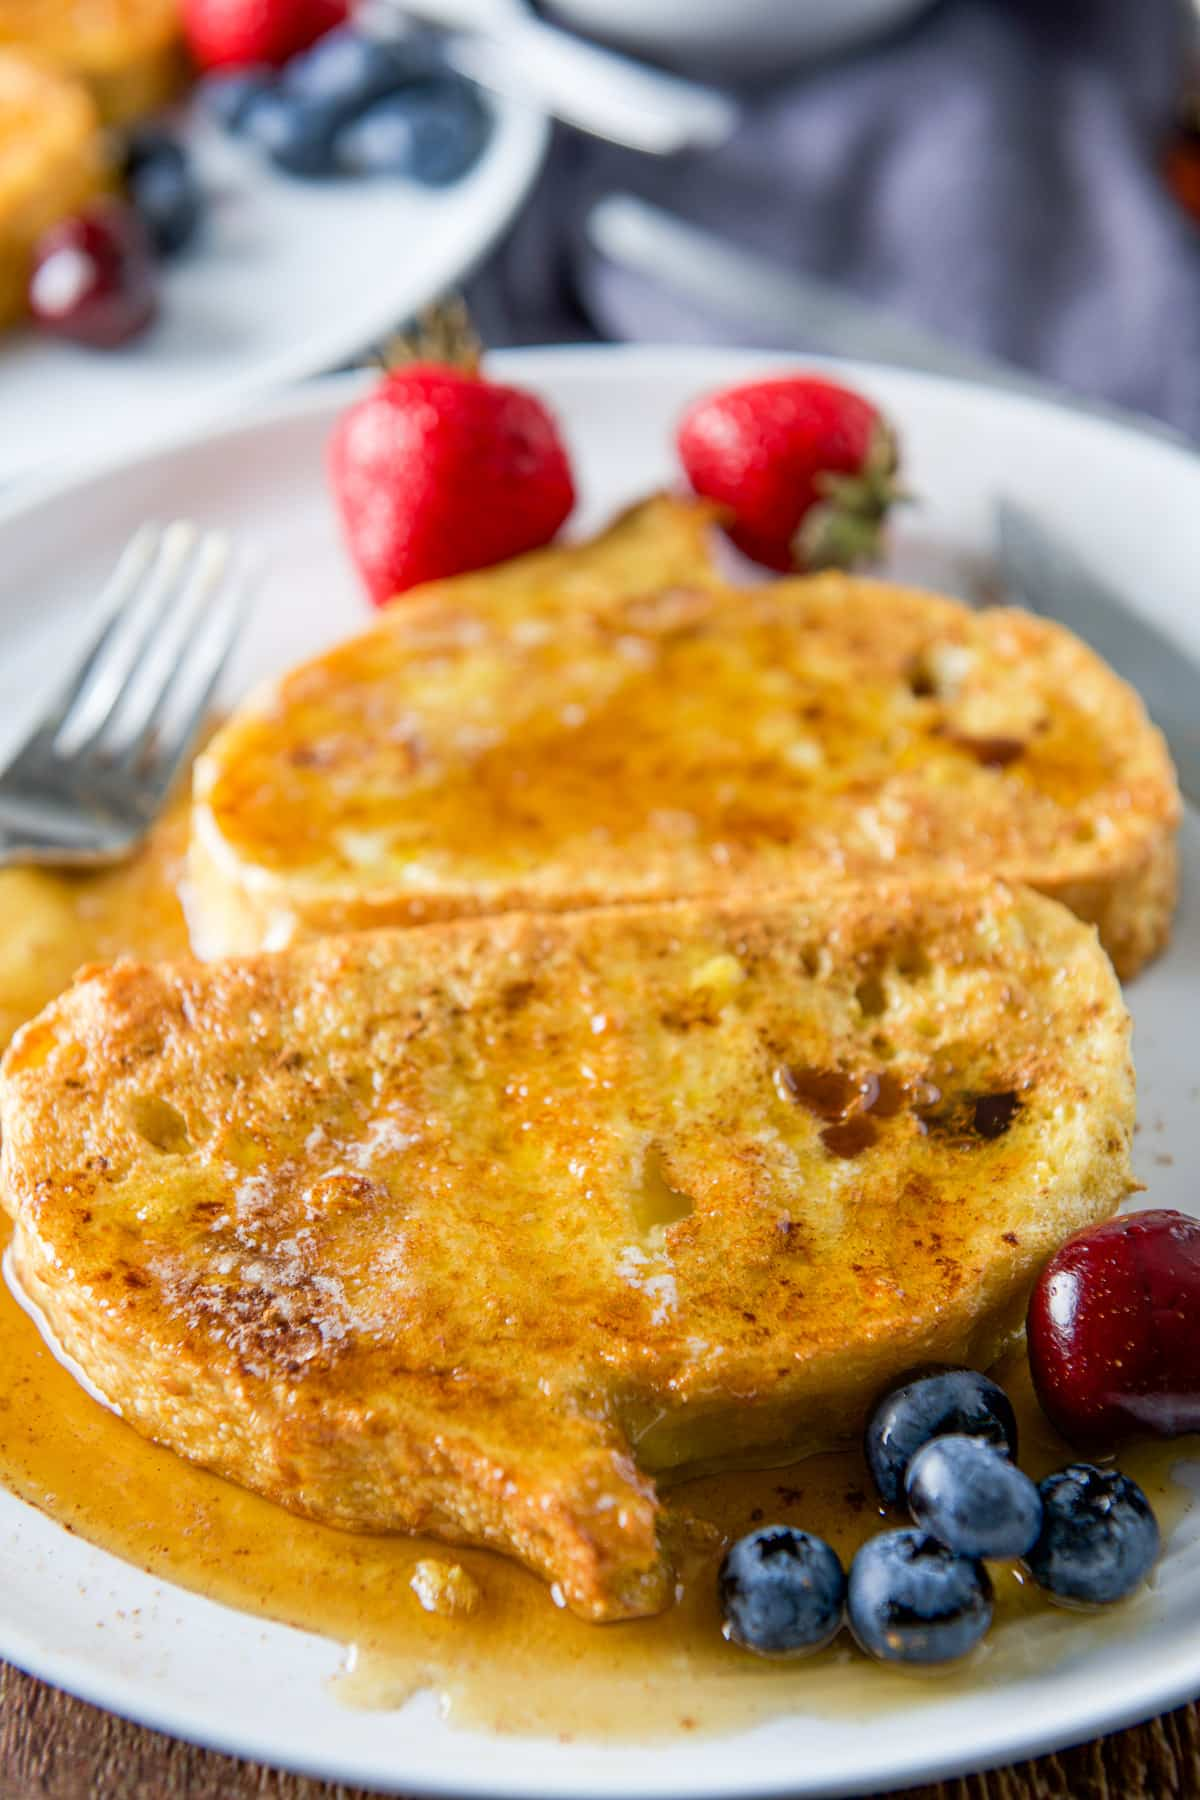 Close up of two pieces of French toast smothered with maple syrup on a plate with fruit